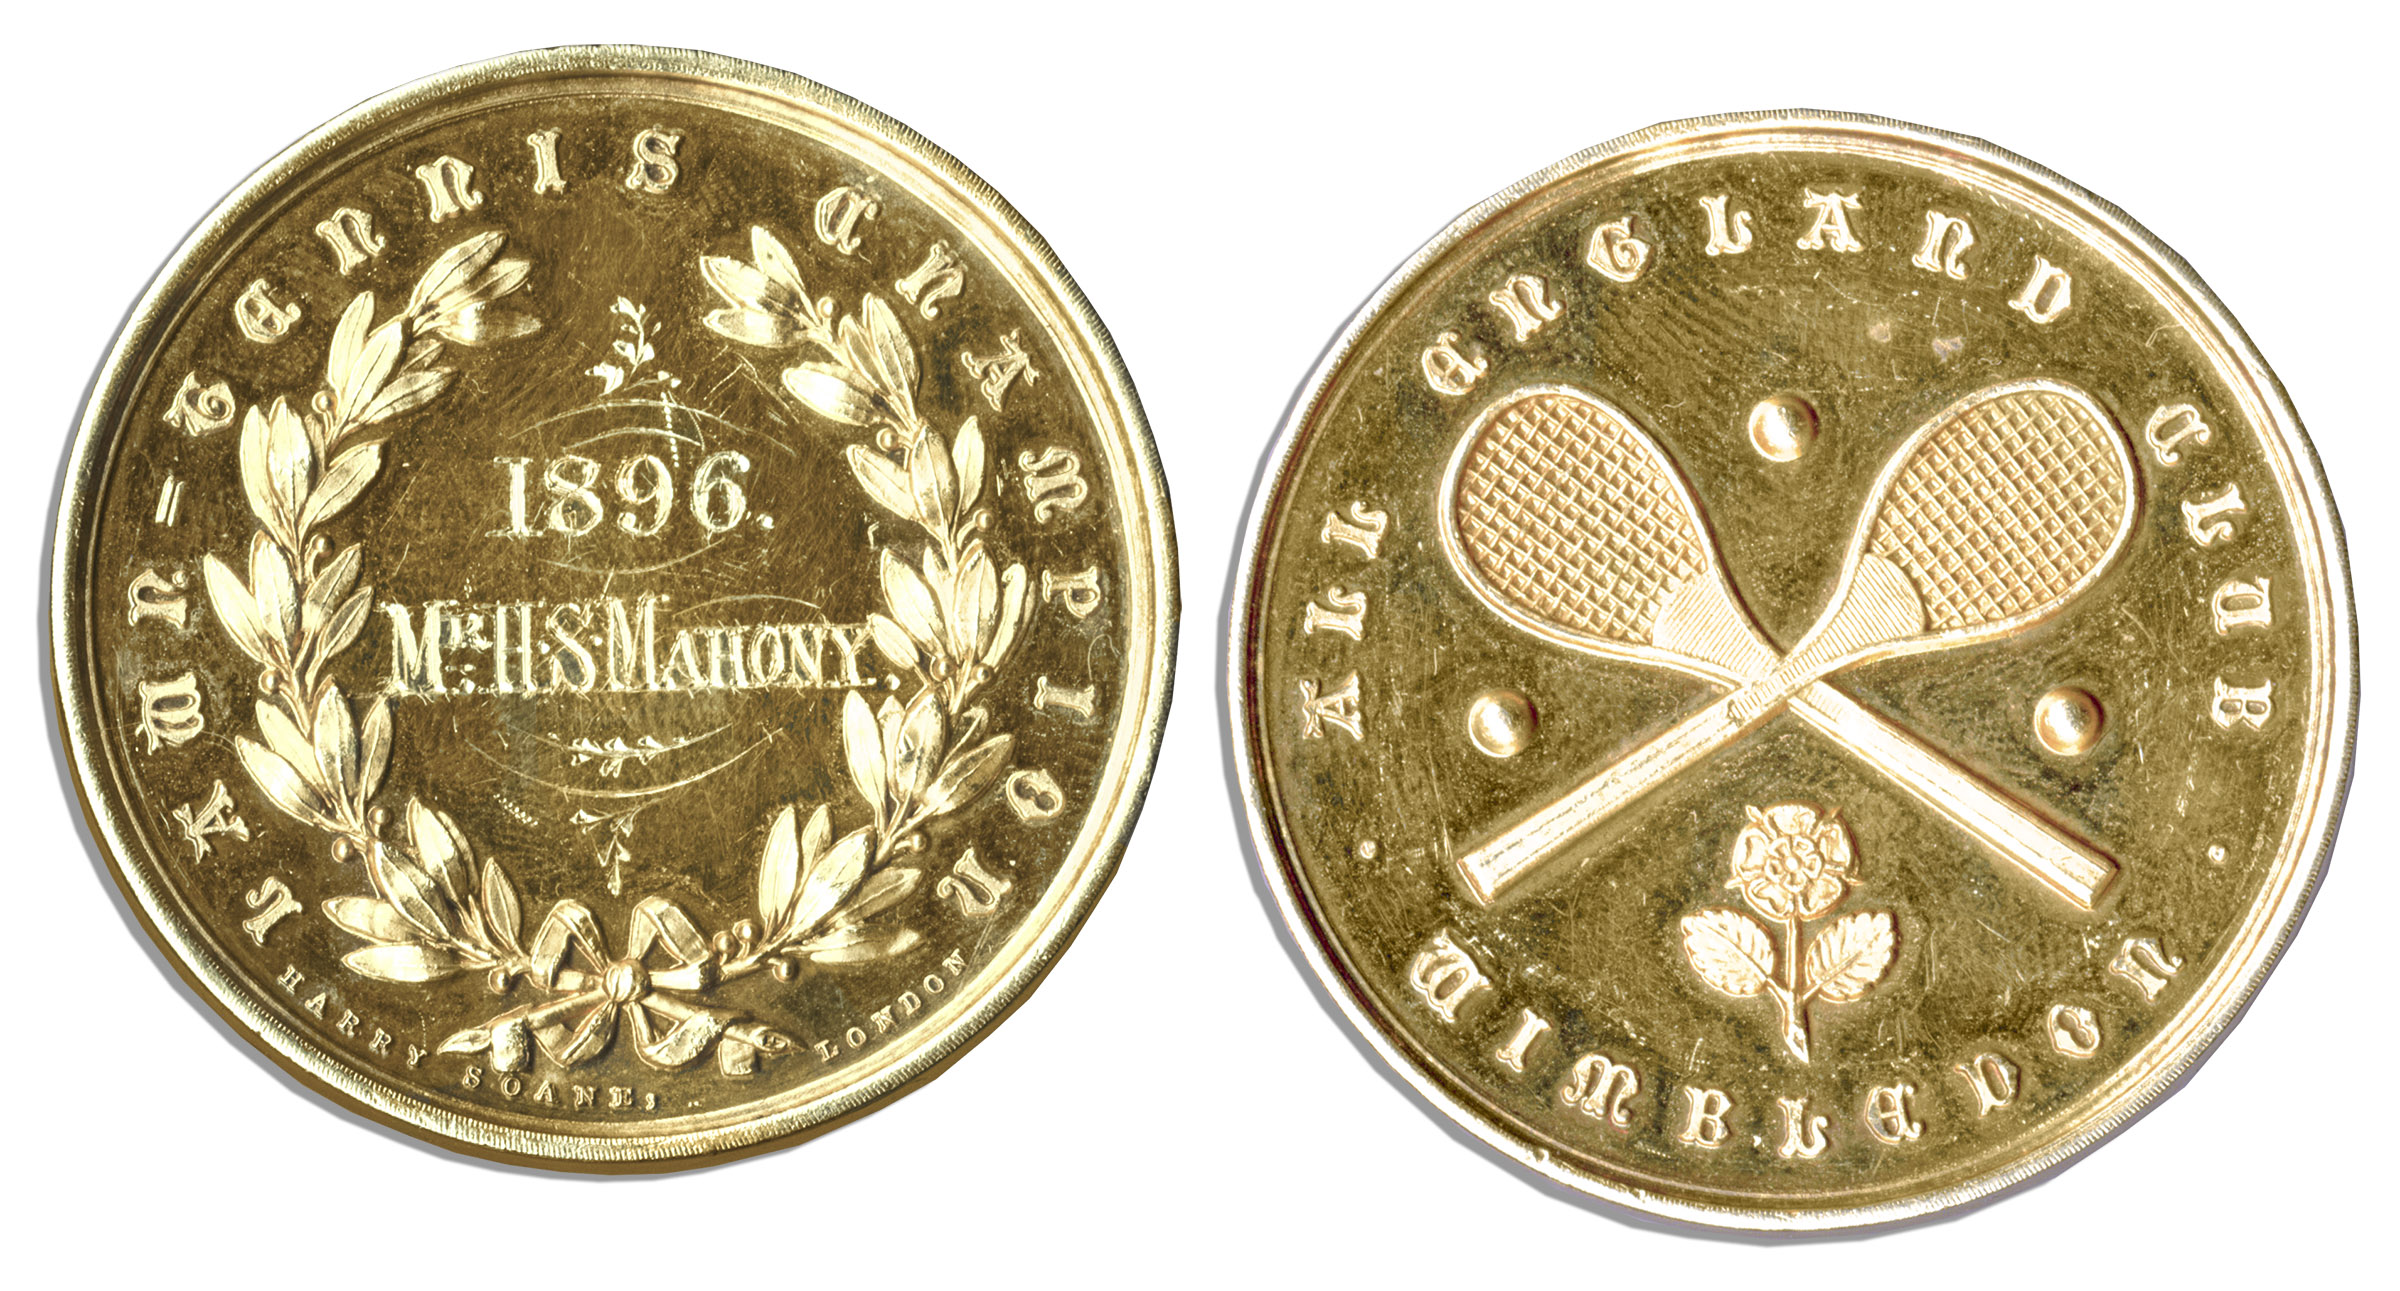 Wimbledon Medal Auction Wimbledon Championship Gold Medal Won by Early Tennis Great Harold Mahony in 1896